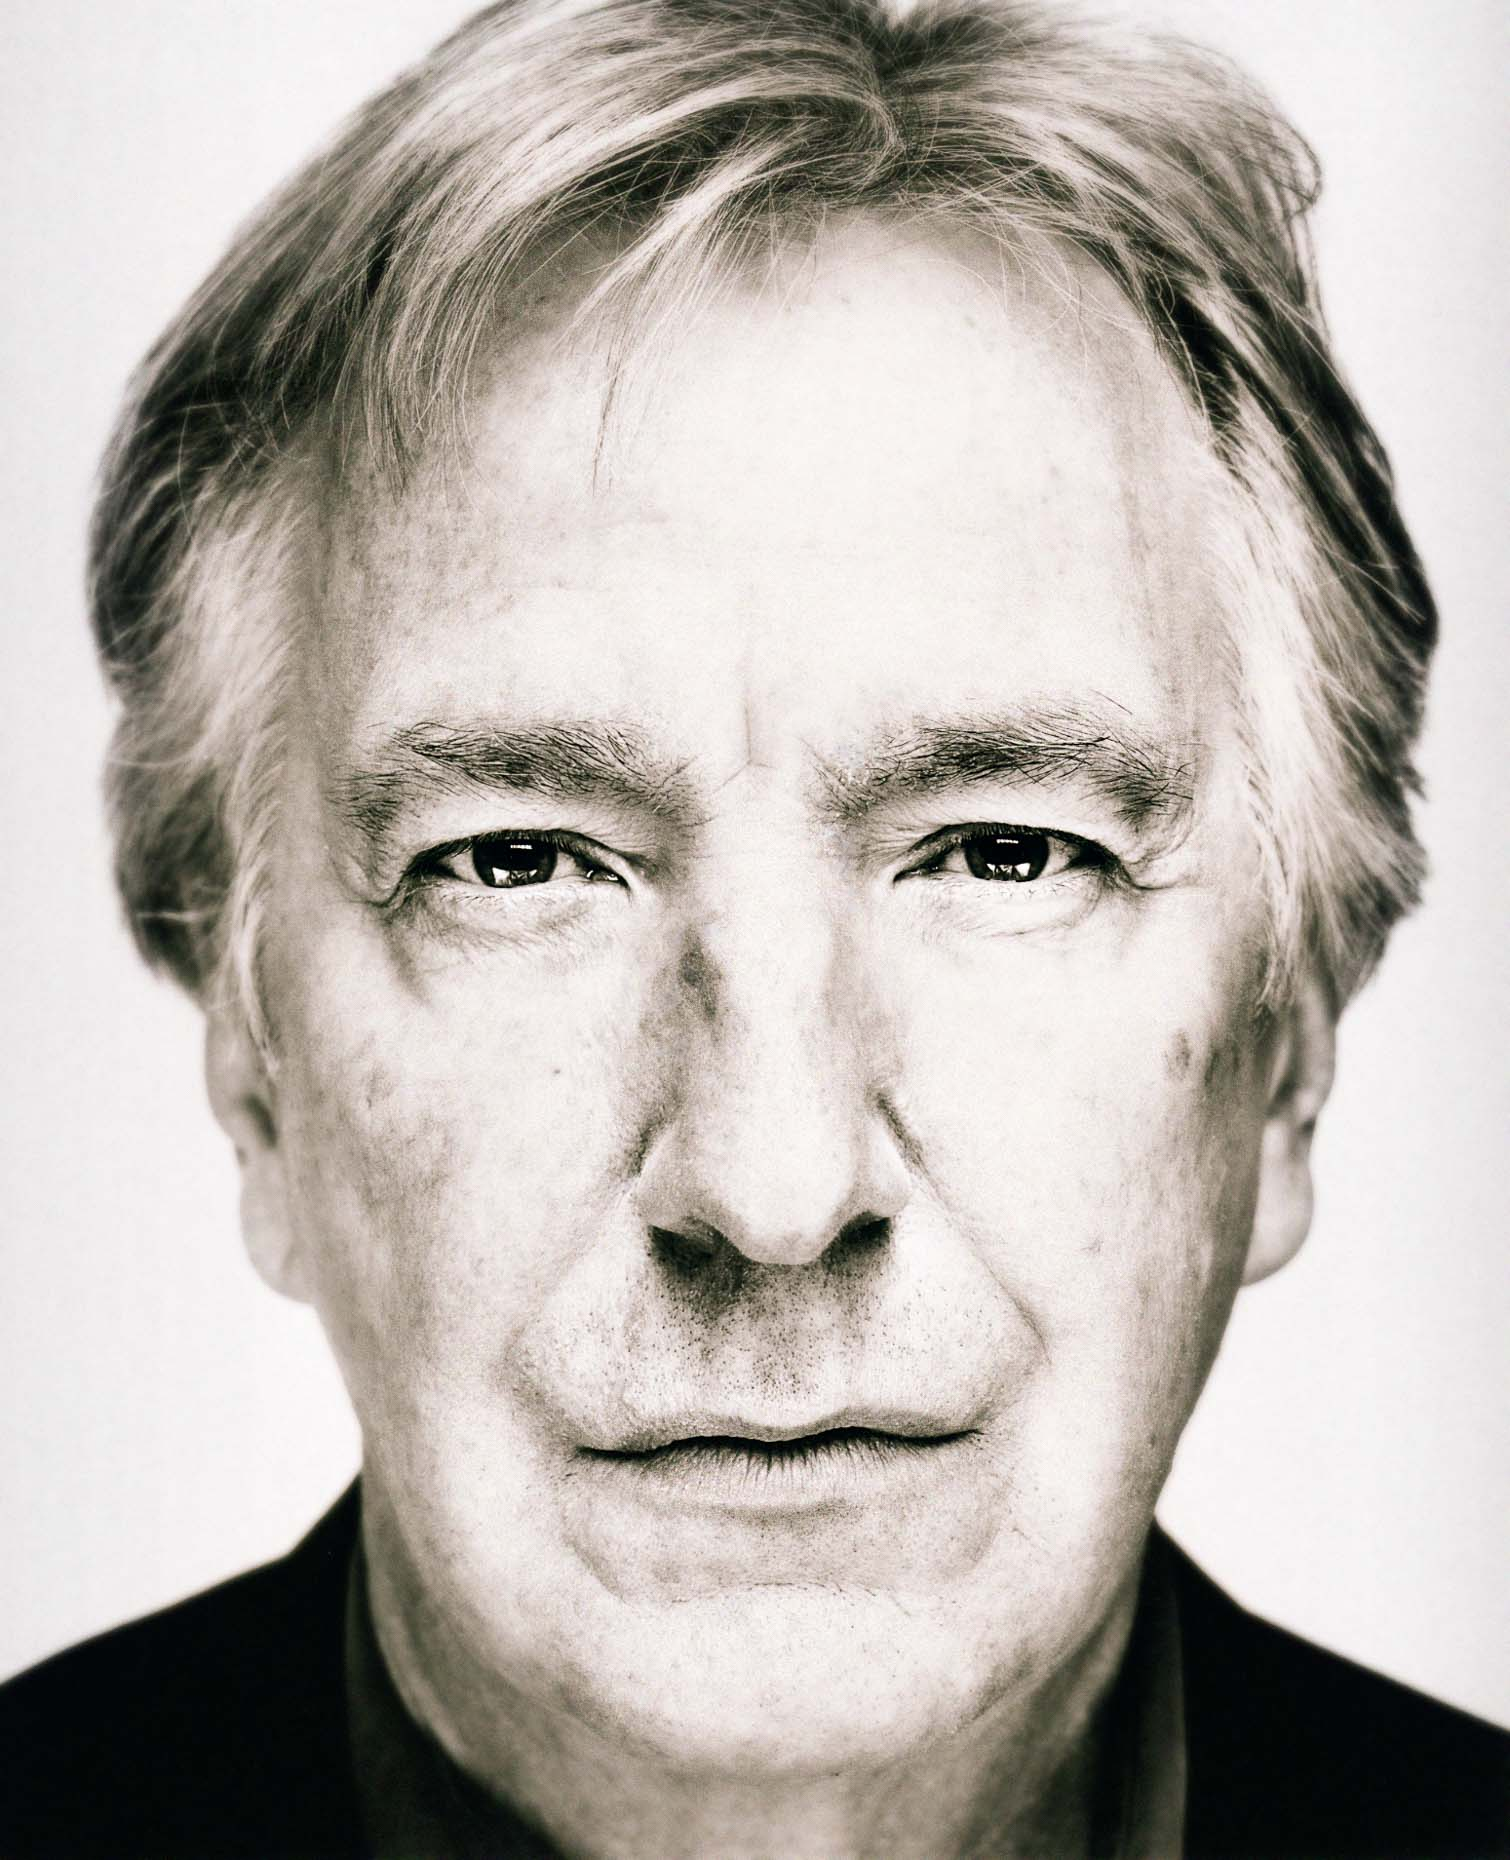 Alan Rickman copy-Edit